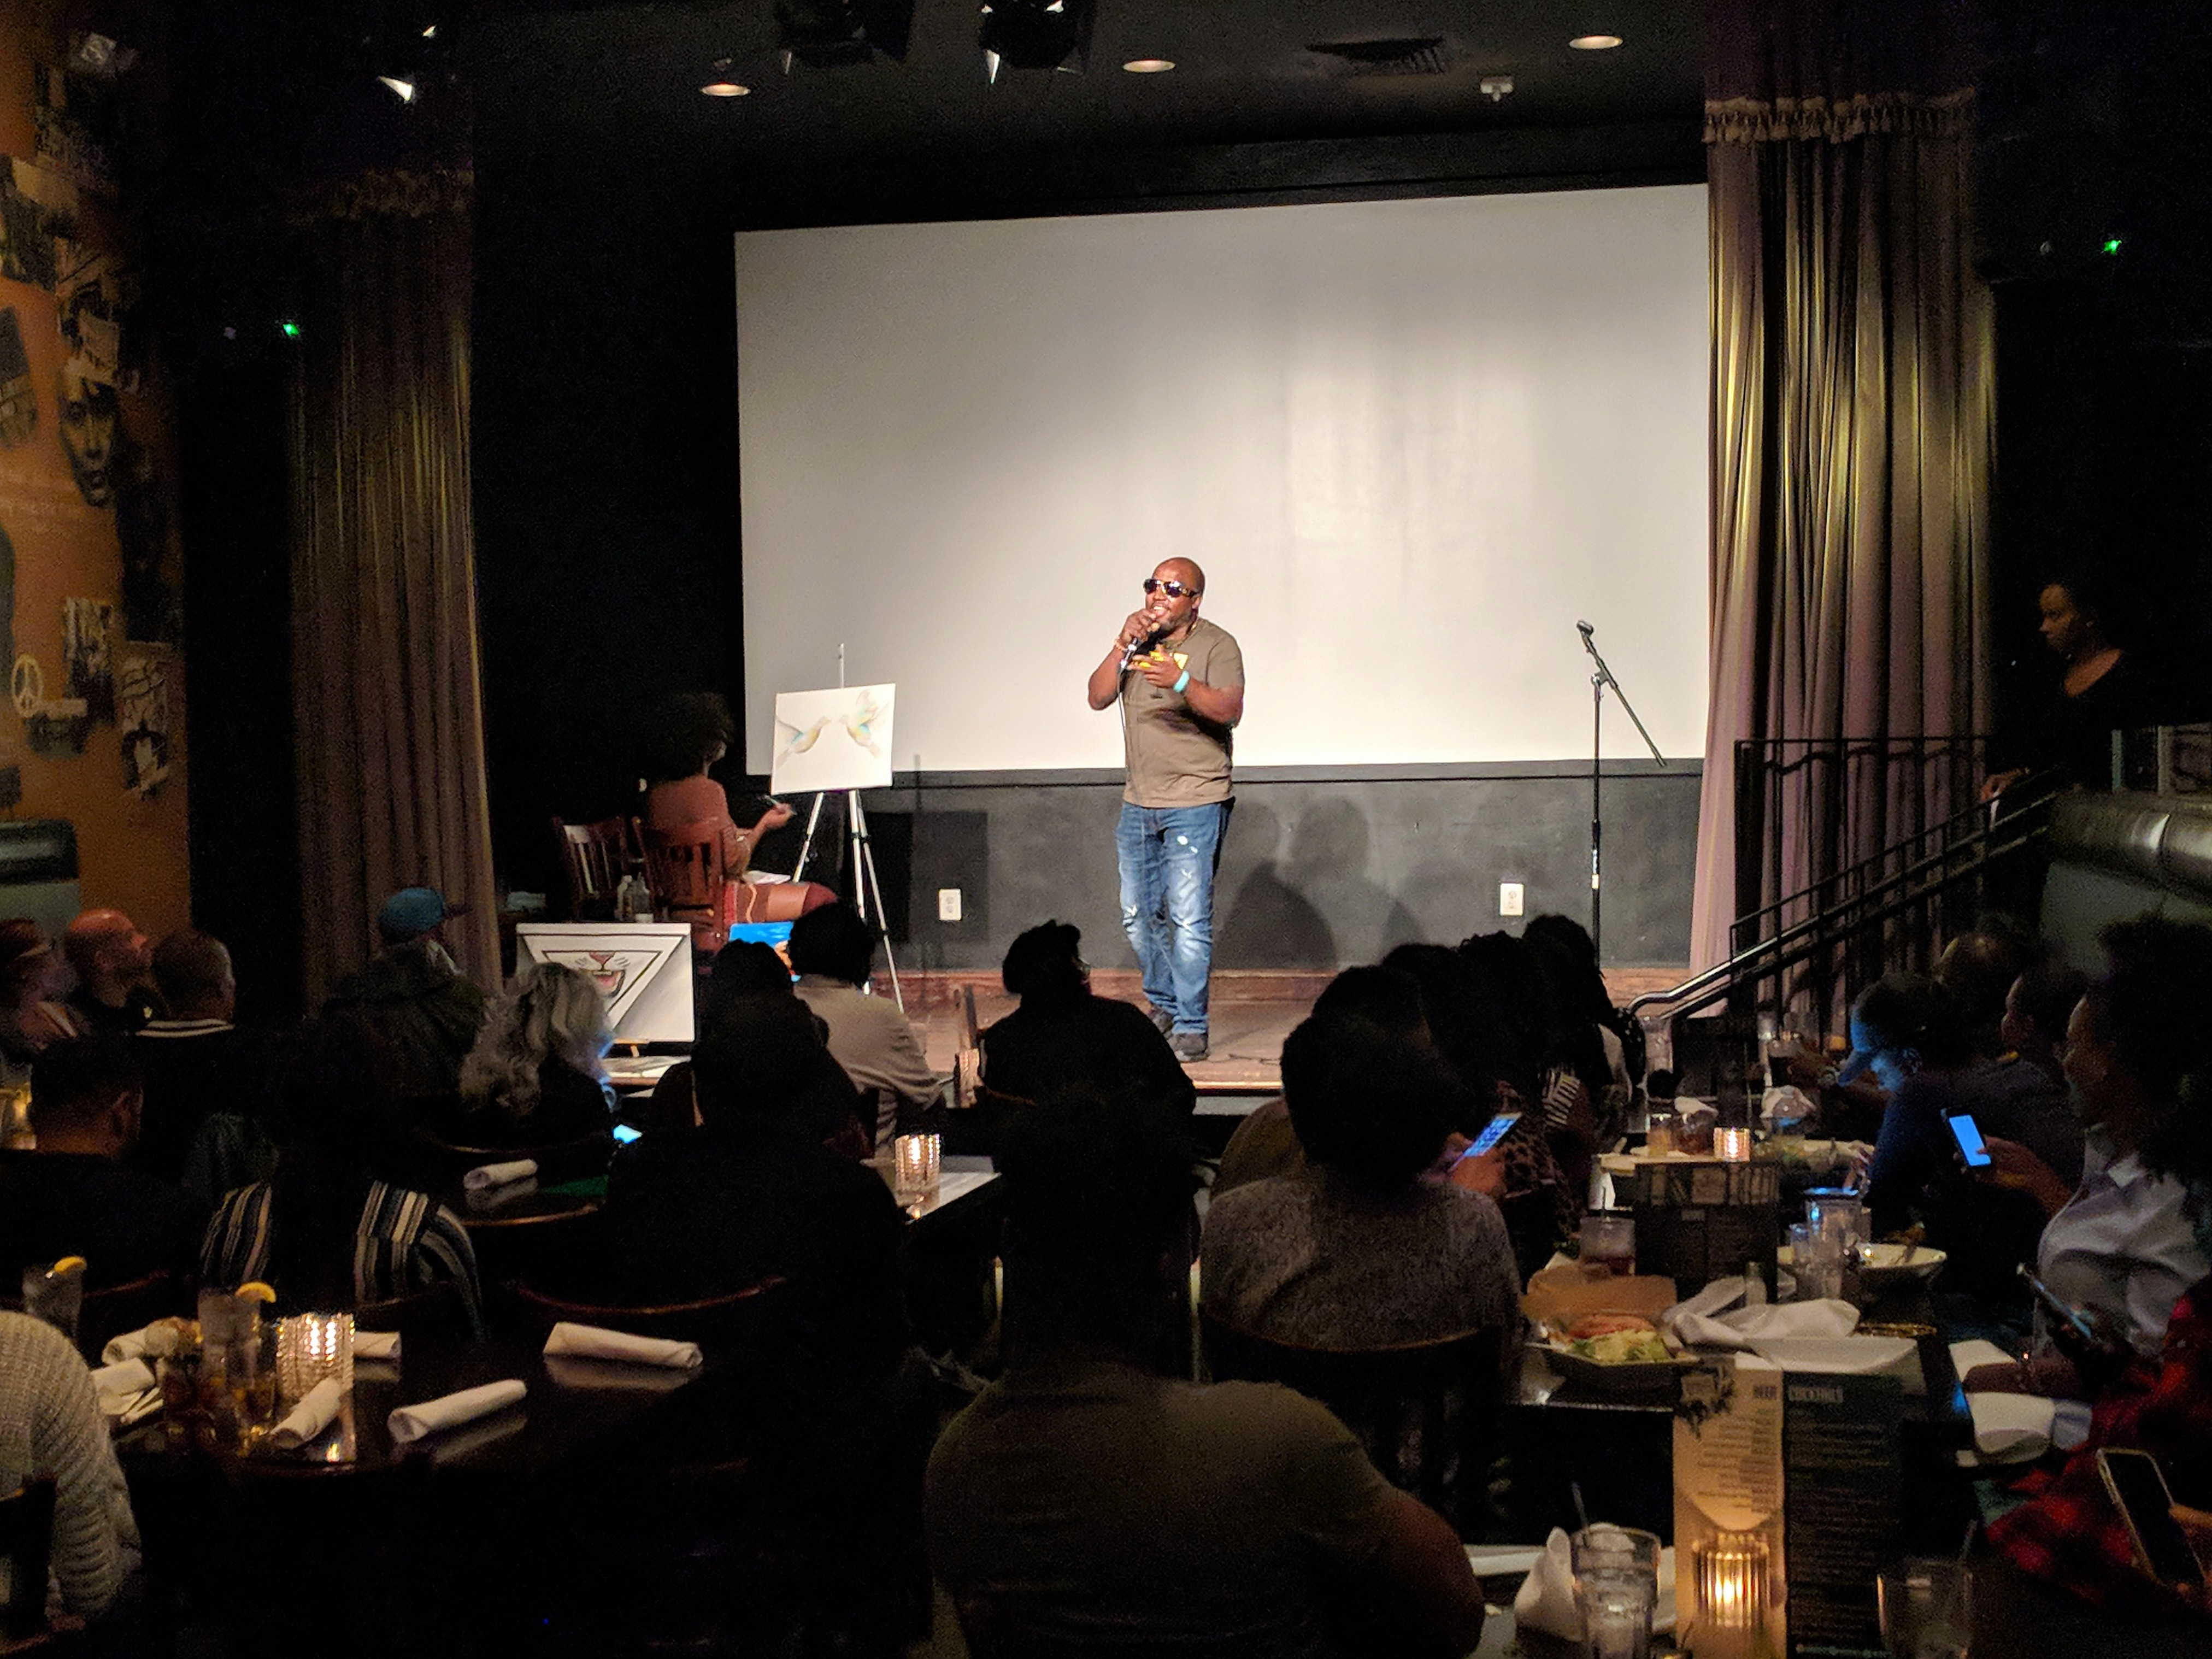 """""""Love Out Loud"""" at Busboys and Poets in Hyattsville, Maryland a Washington DC suburb. Photo: Daniel Baldwin"""